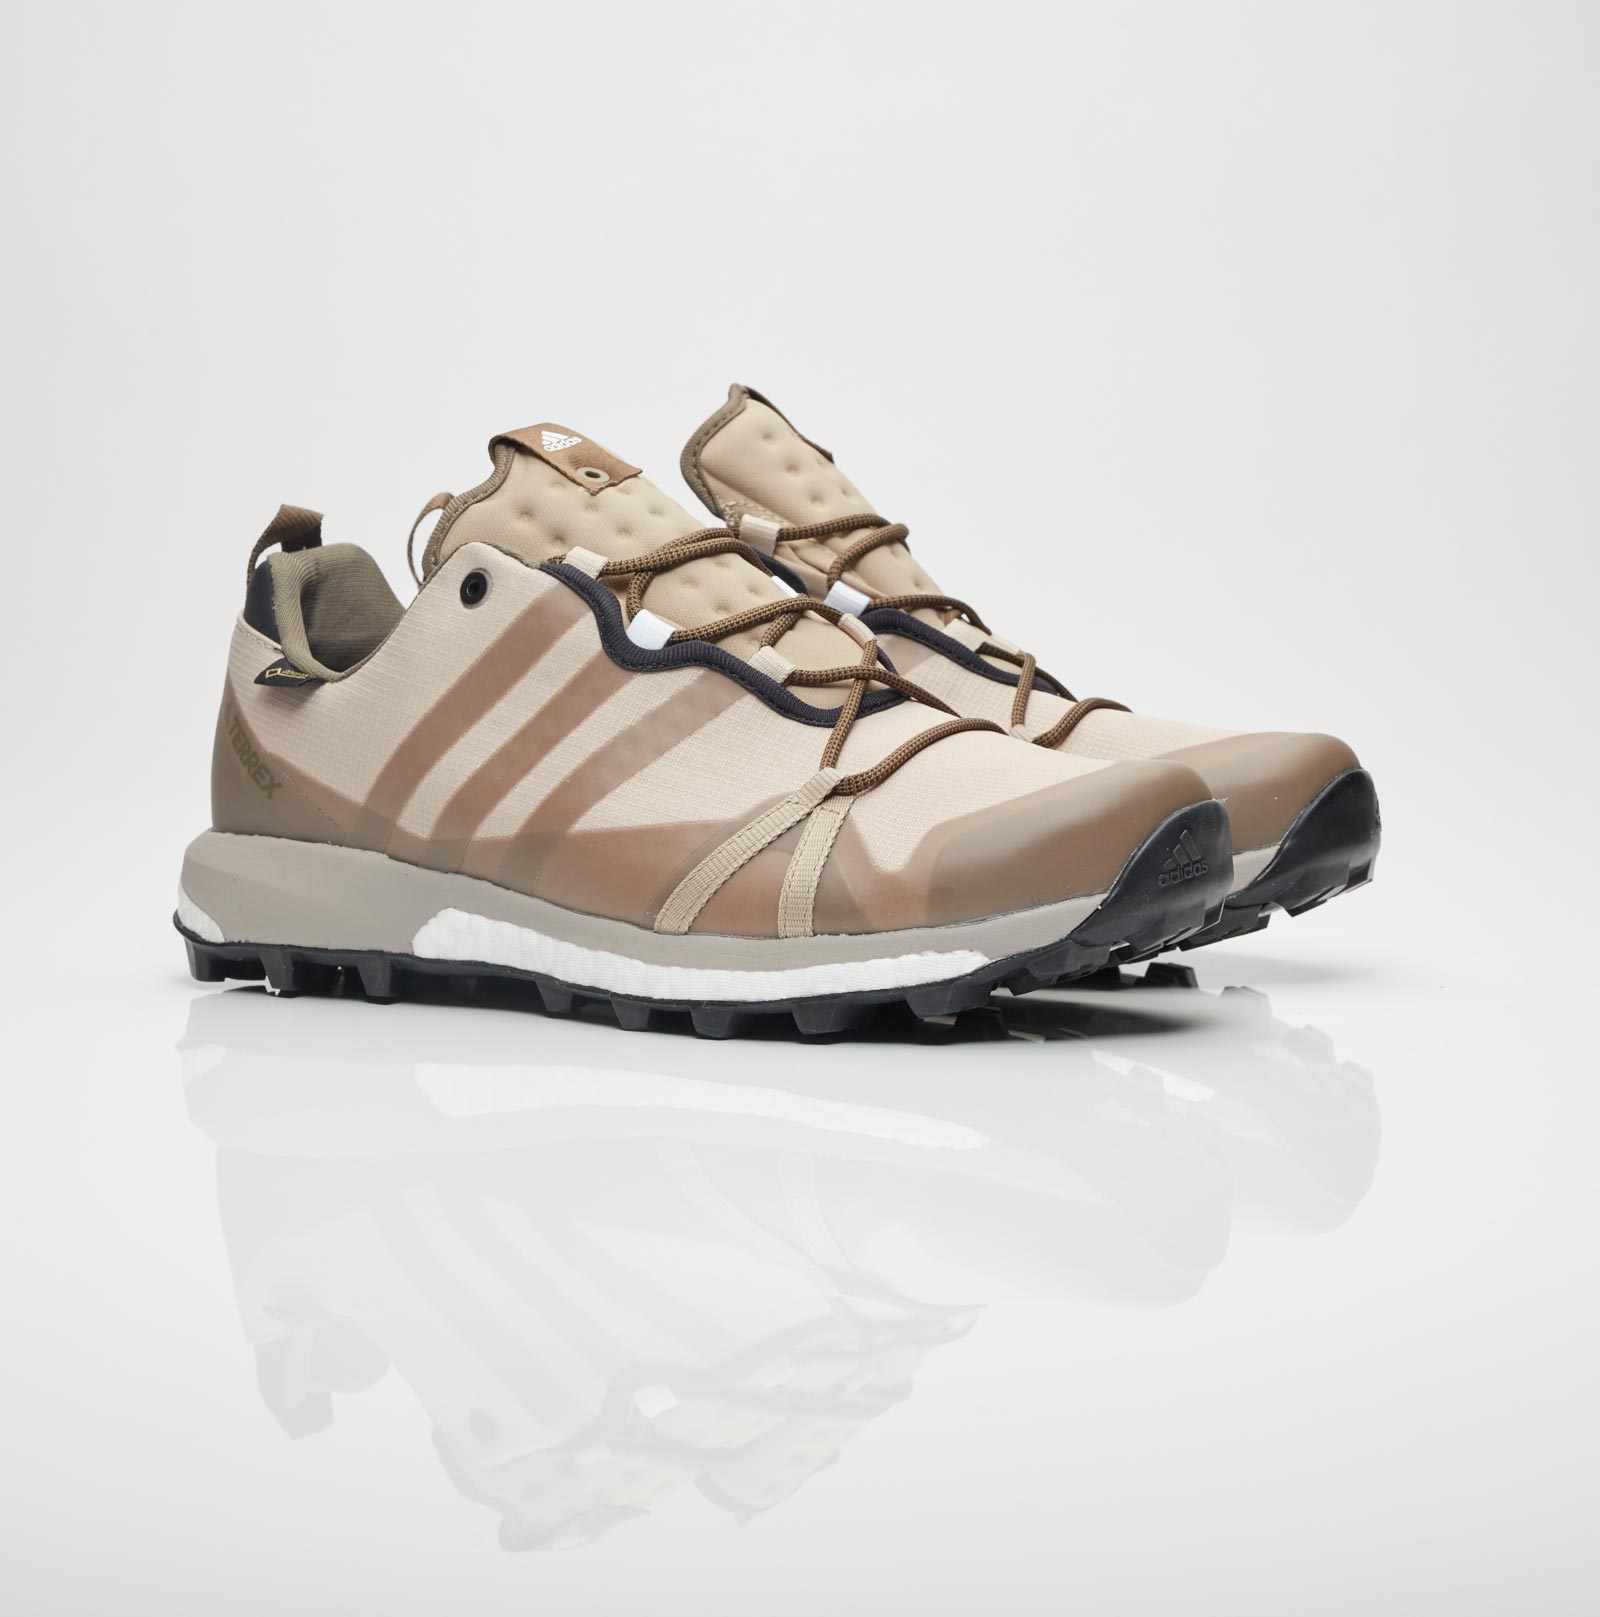 adidas consortium x norse projects terrex agravic